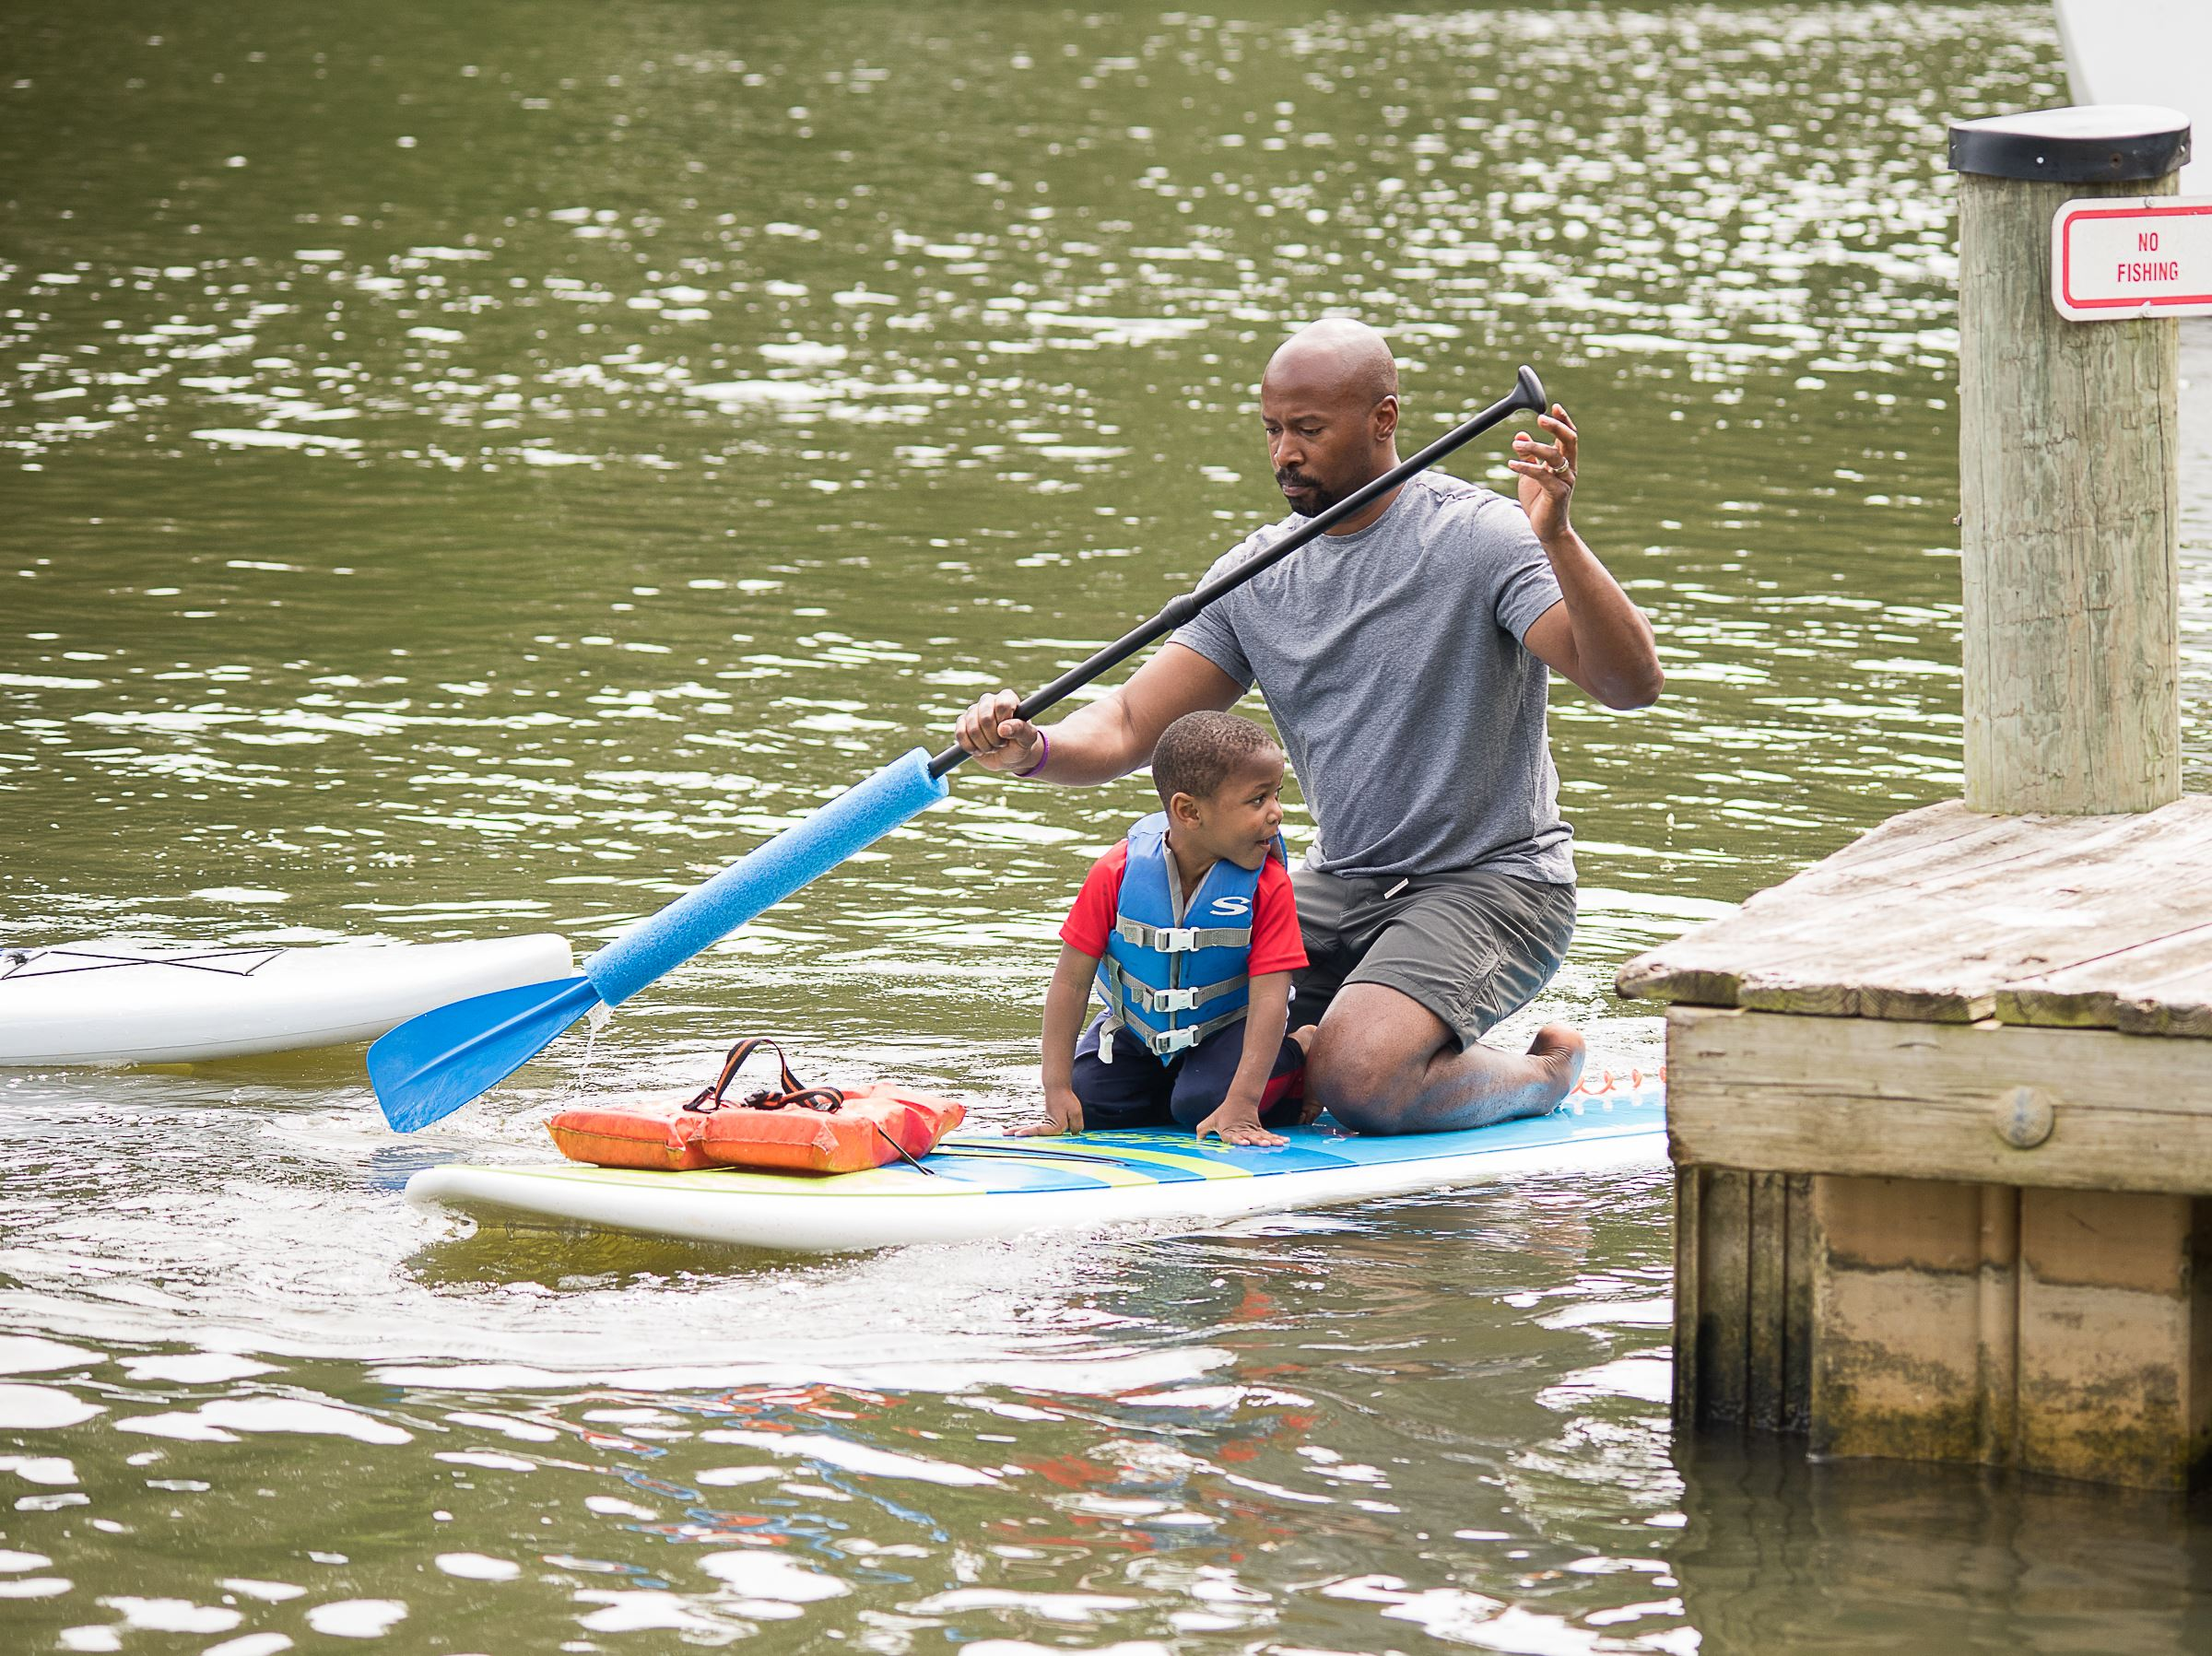 man and boy on paddleboard